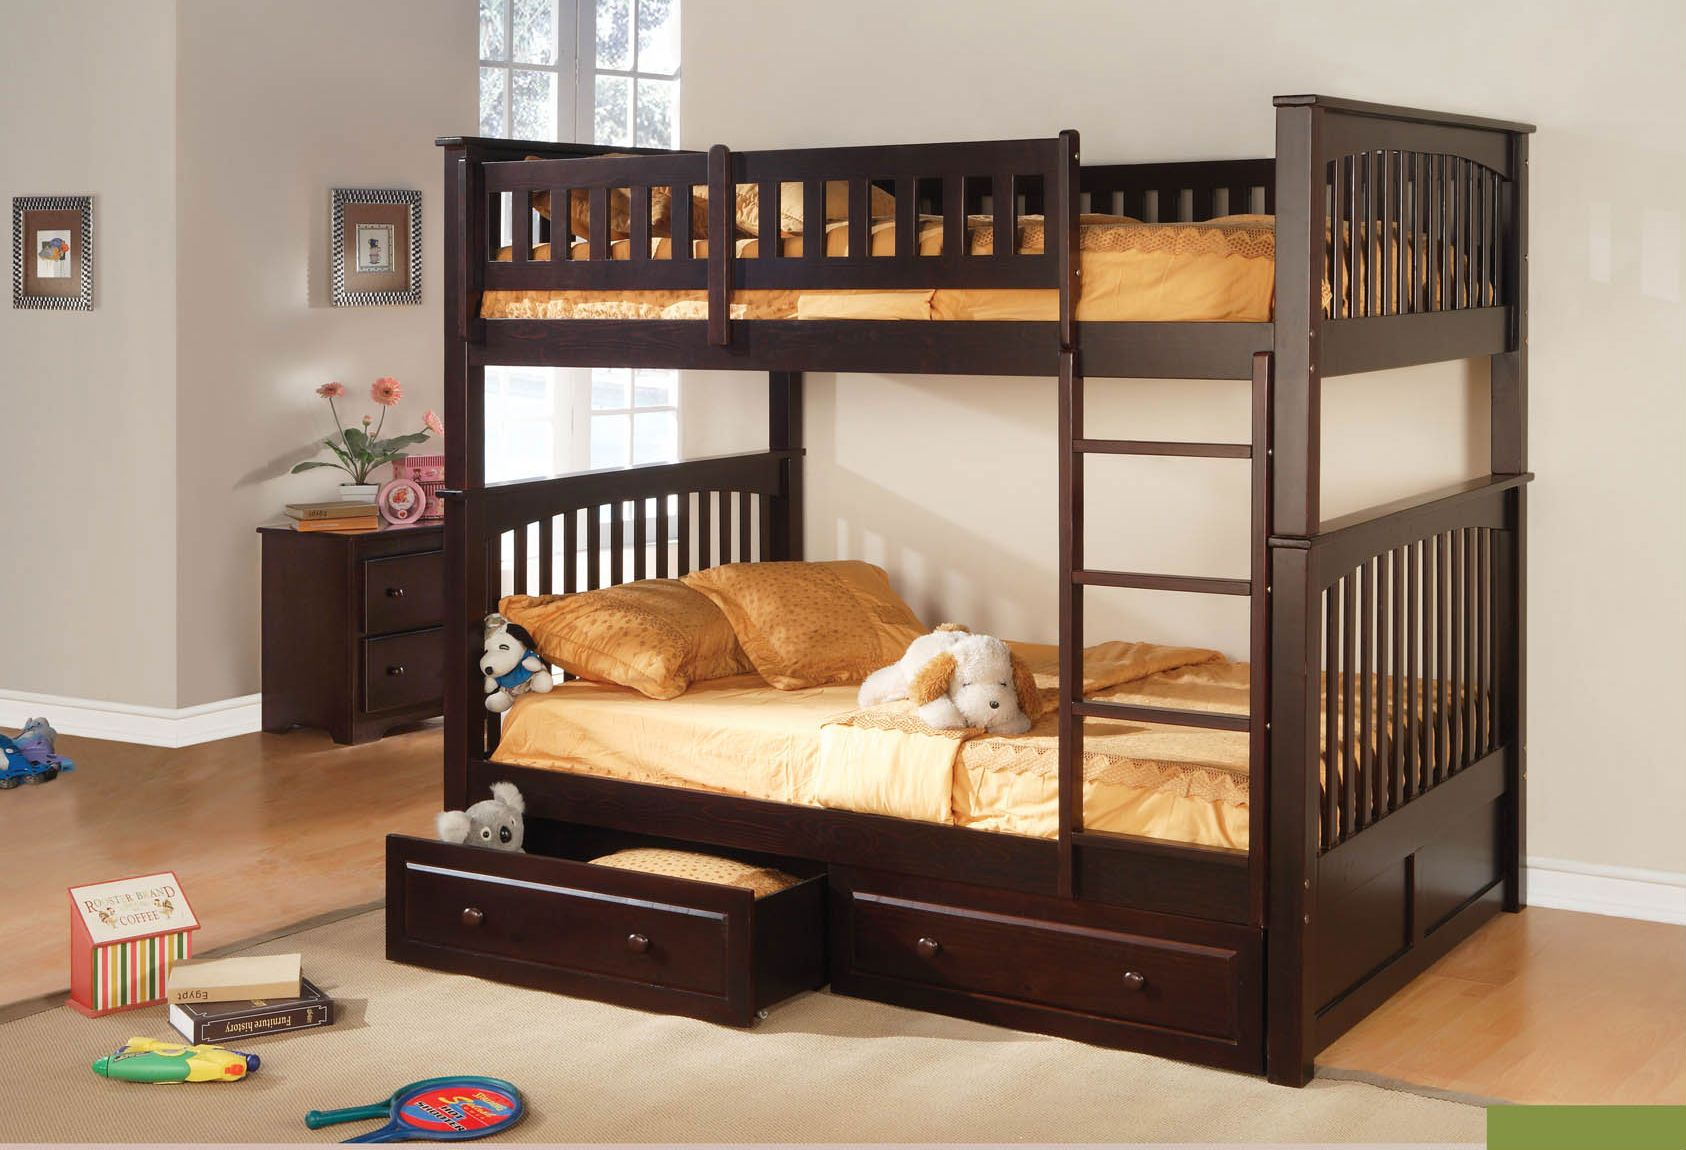 Pin By Adsapt On Free Classifieds Bangalore Bunk Beds Full Bunk